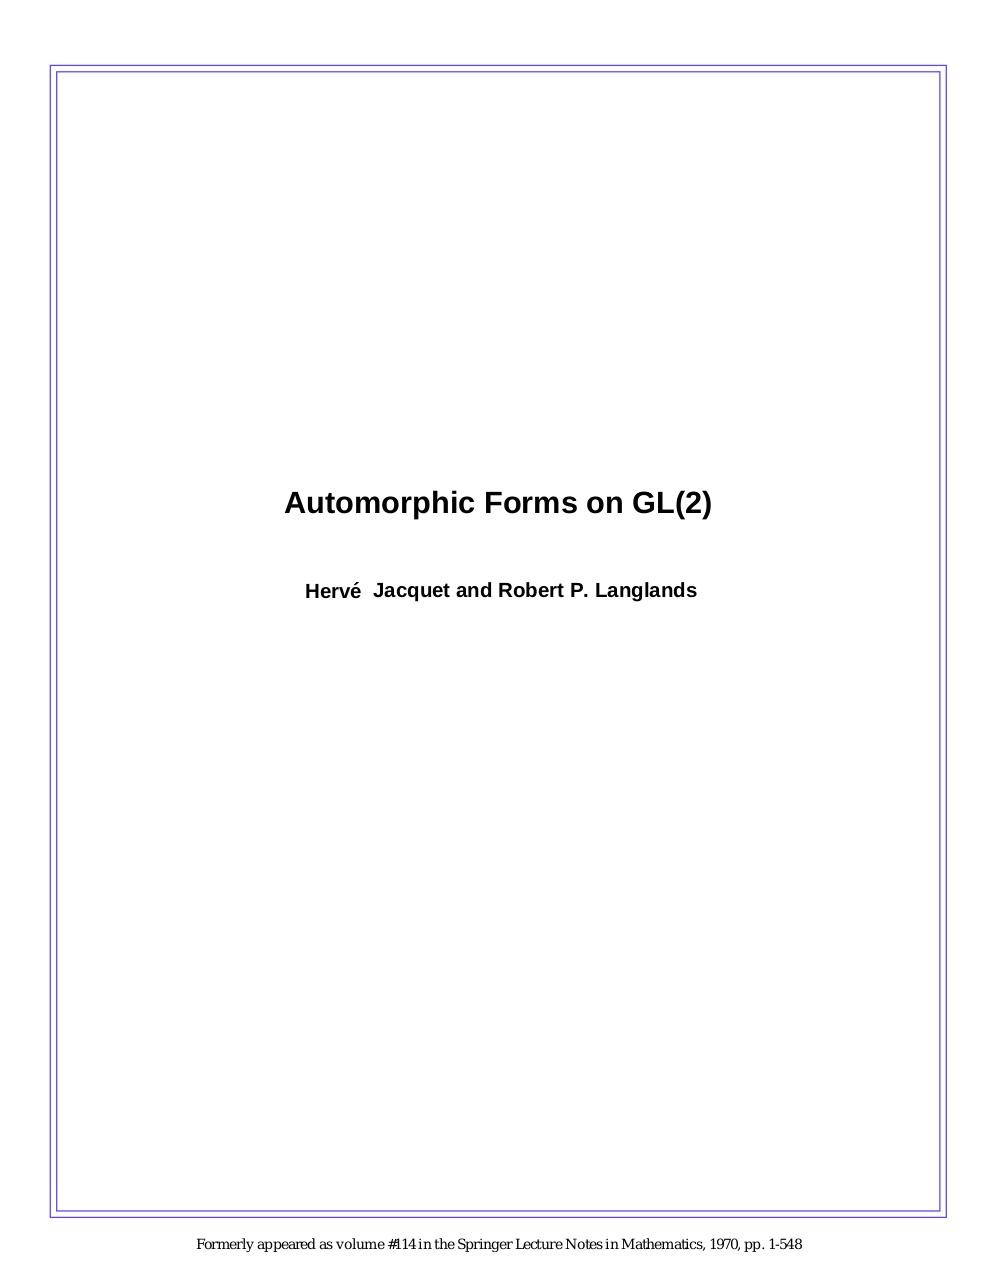 Automorphic Forms on GL(2) - H. Jacquet, R. Langlands.pdf - page 1/294